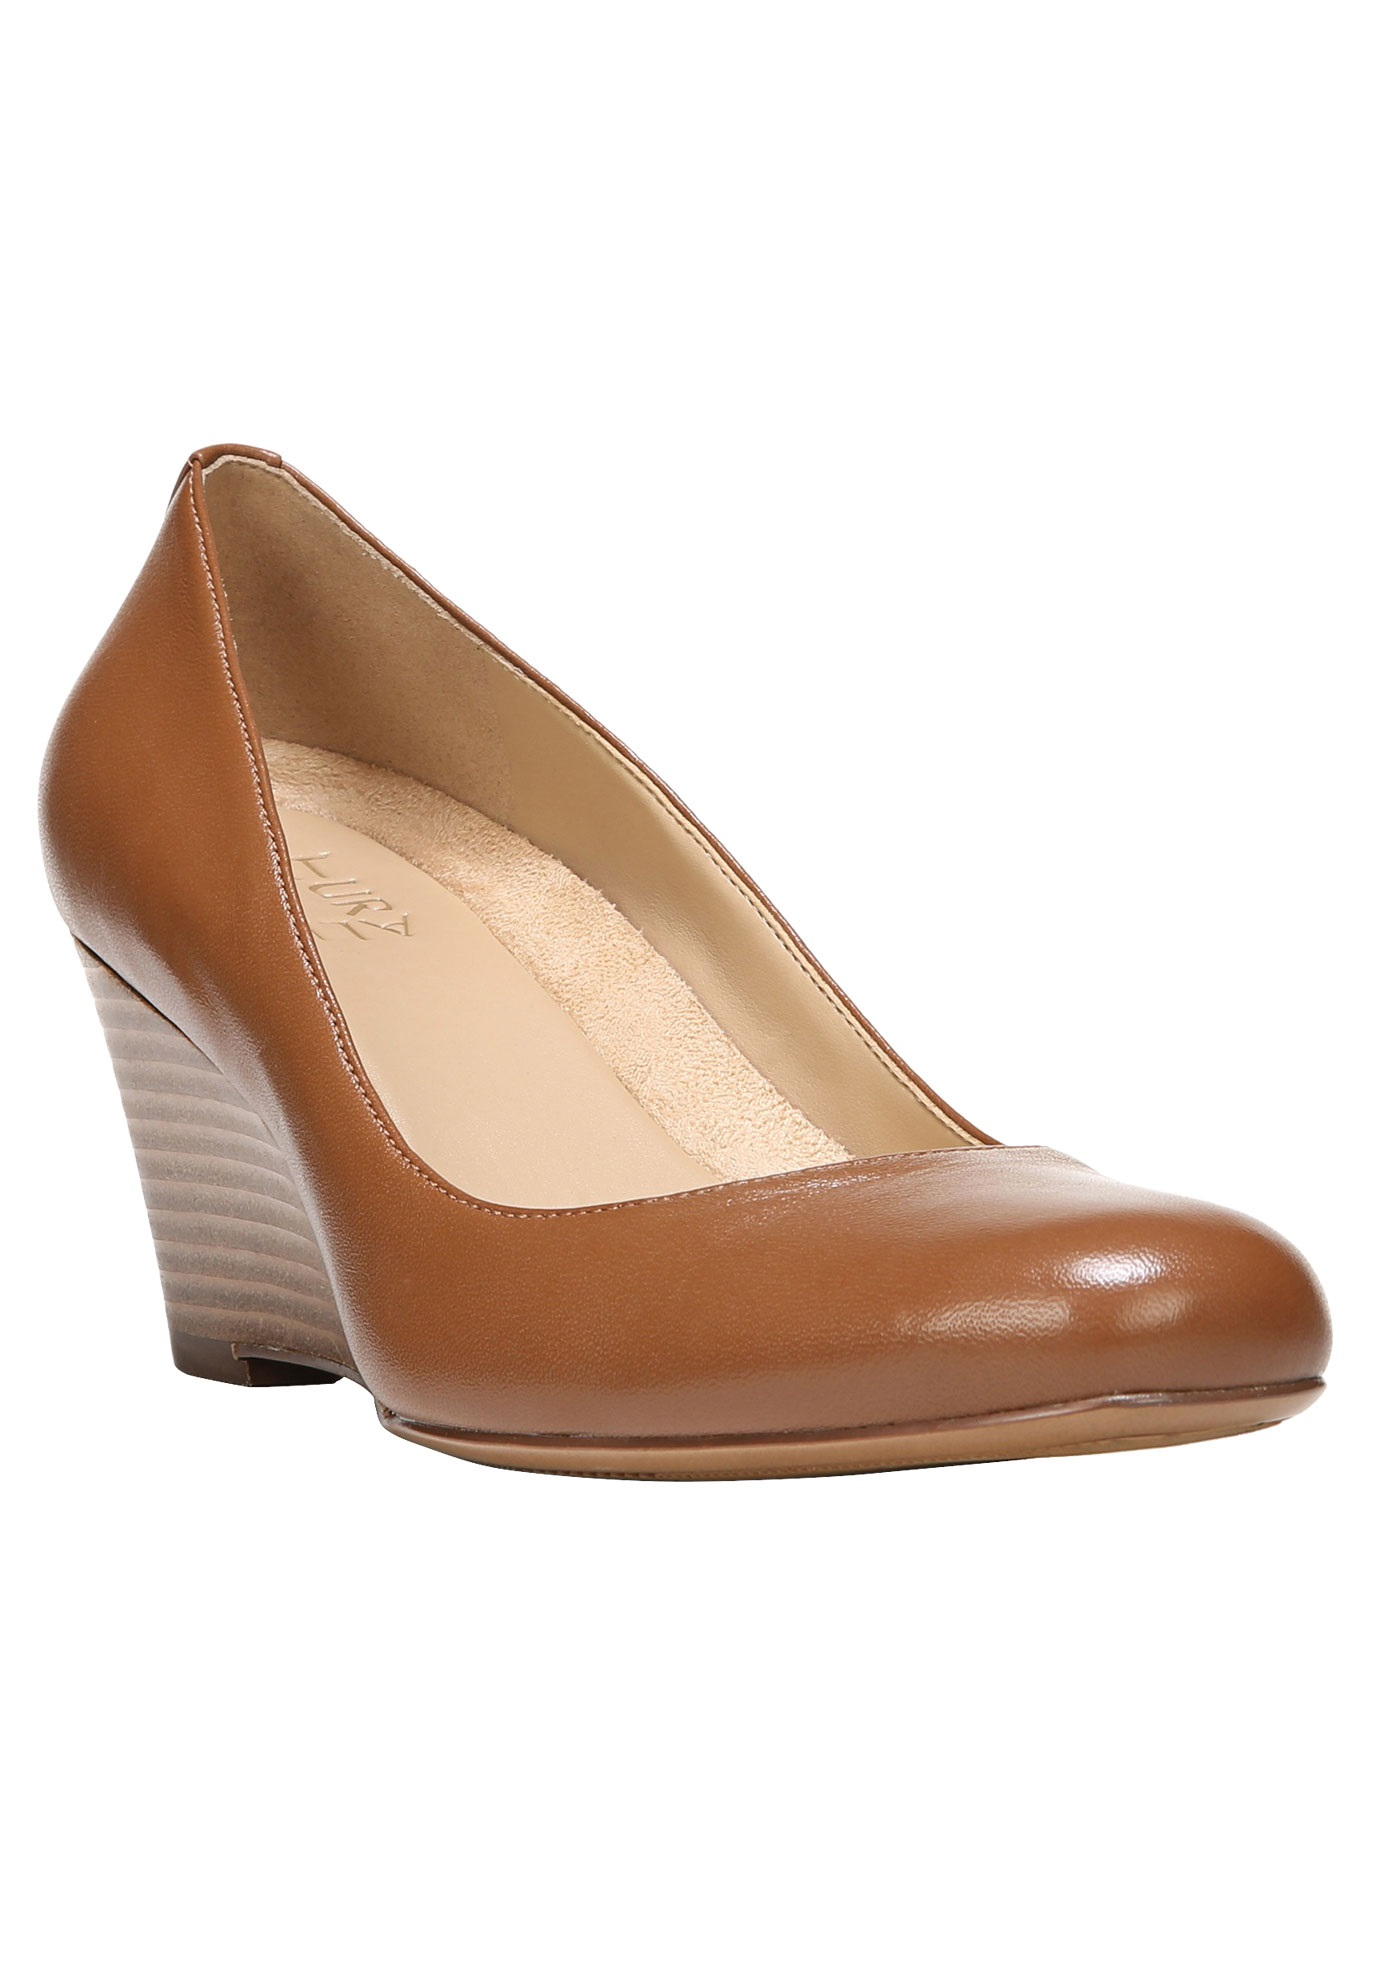 Emily Wedges by Naturalizer®, TAN LEATHER, hi-res